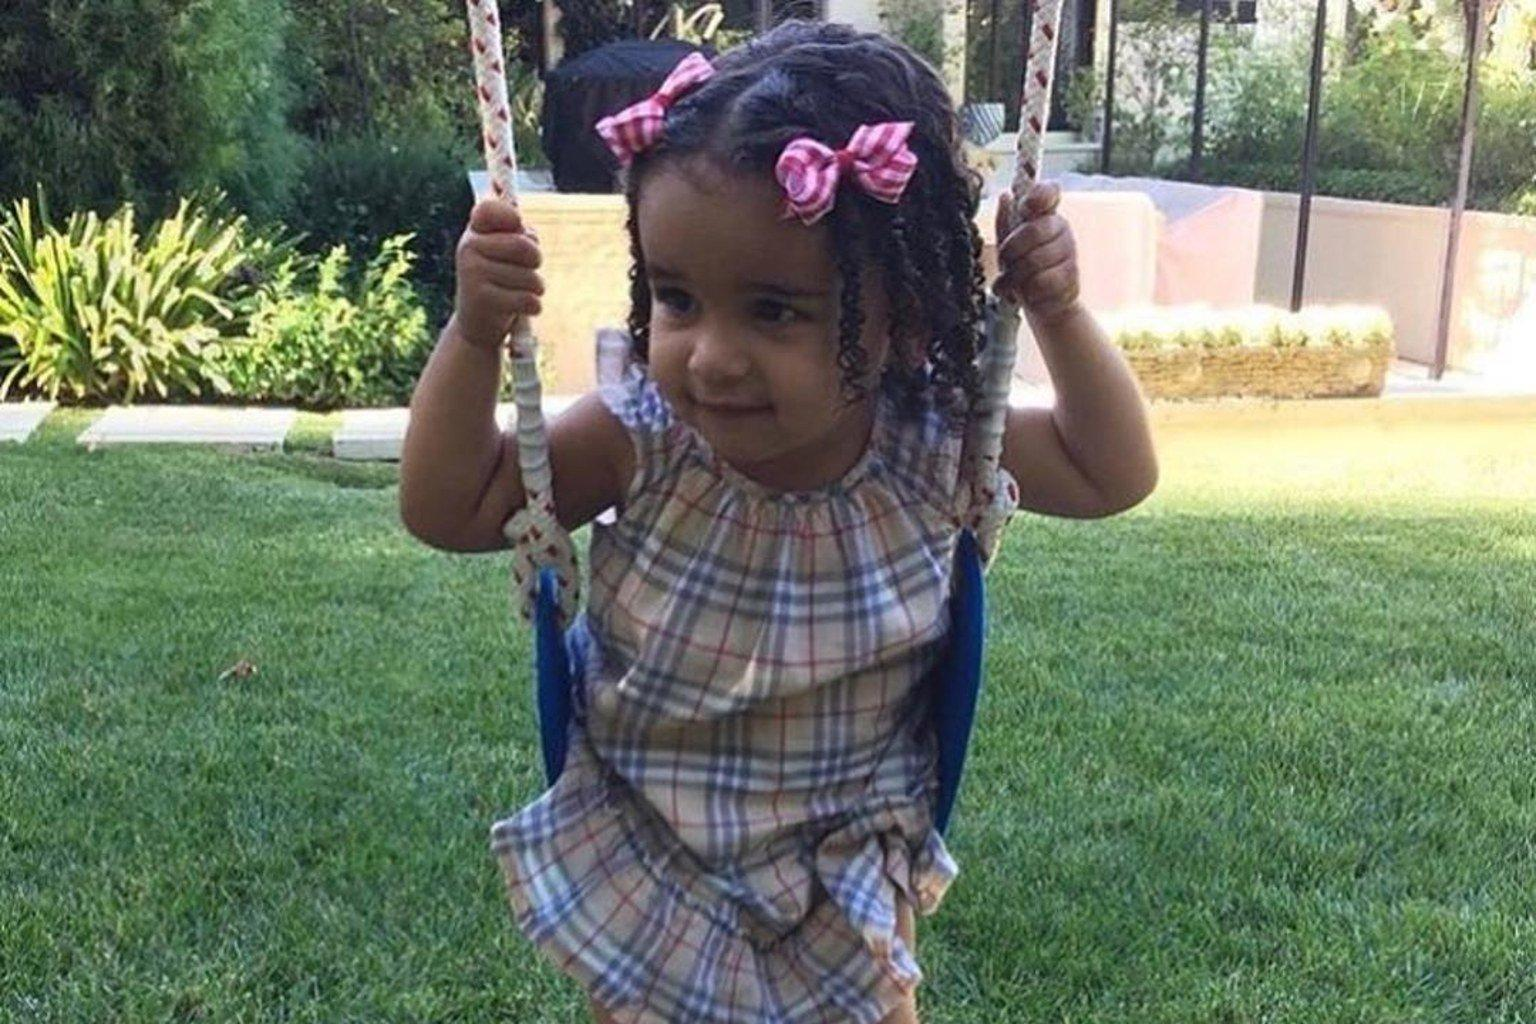 Blac Chyna's Daughter, Dream Kardashian Is Having The Best Time With Khloe's Baby Girl, True Thompson - These Two Girls Will Melt Your Heart